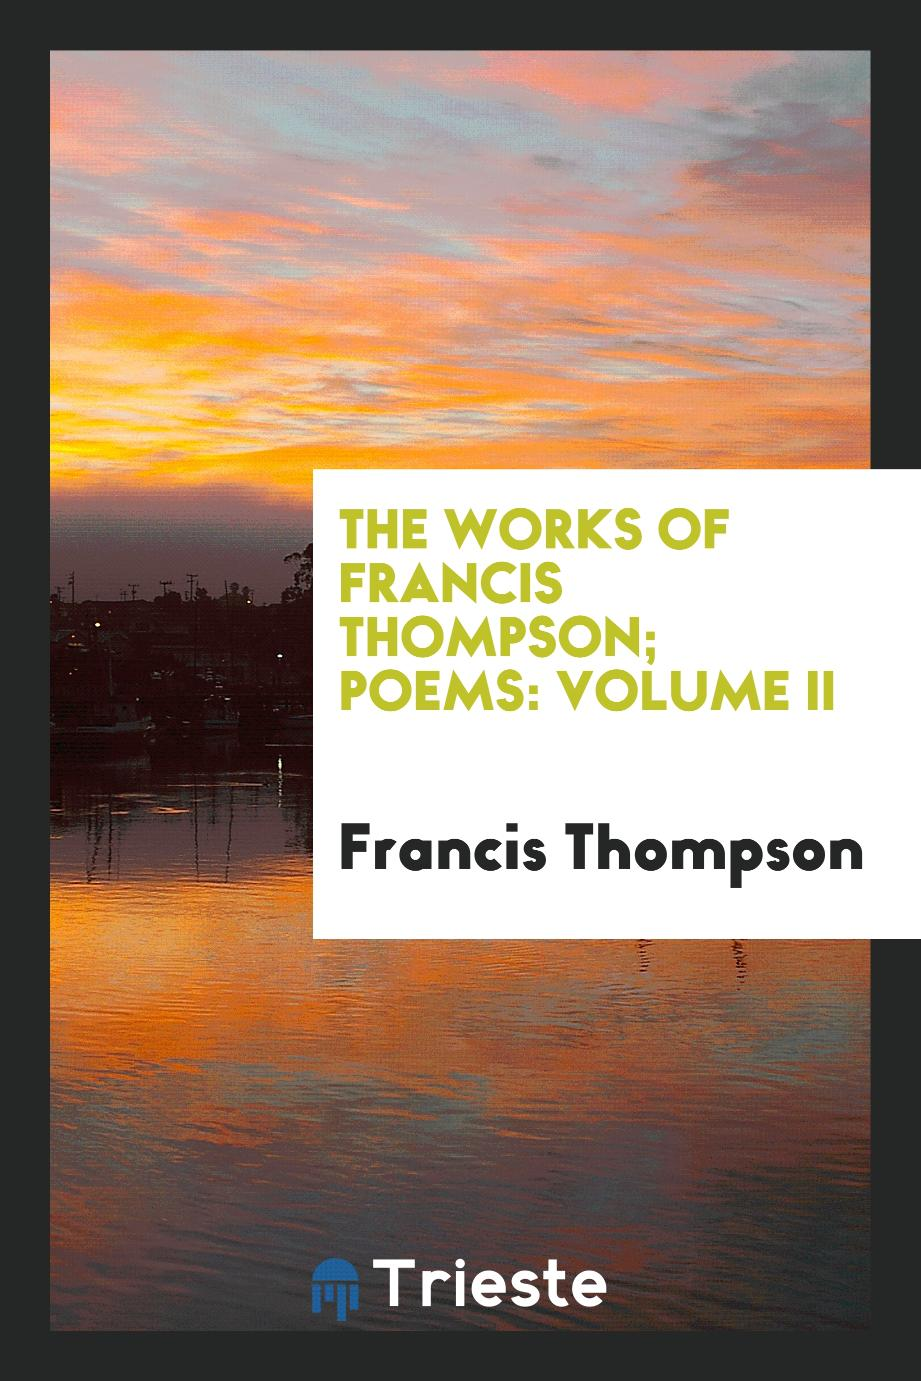 The works of Francis Thompson; Poems: Volume II